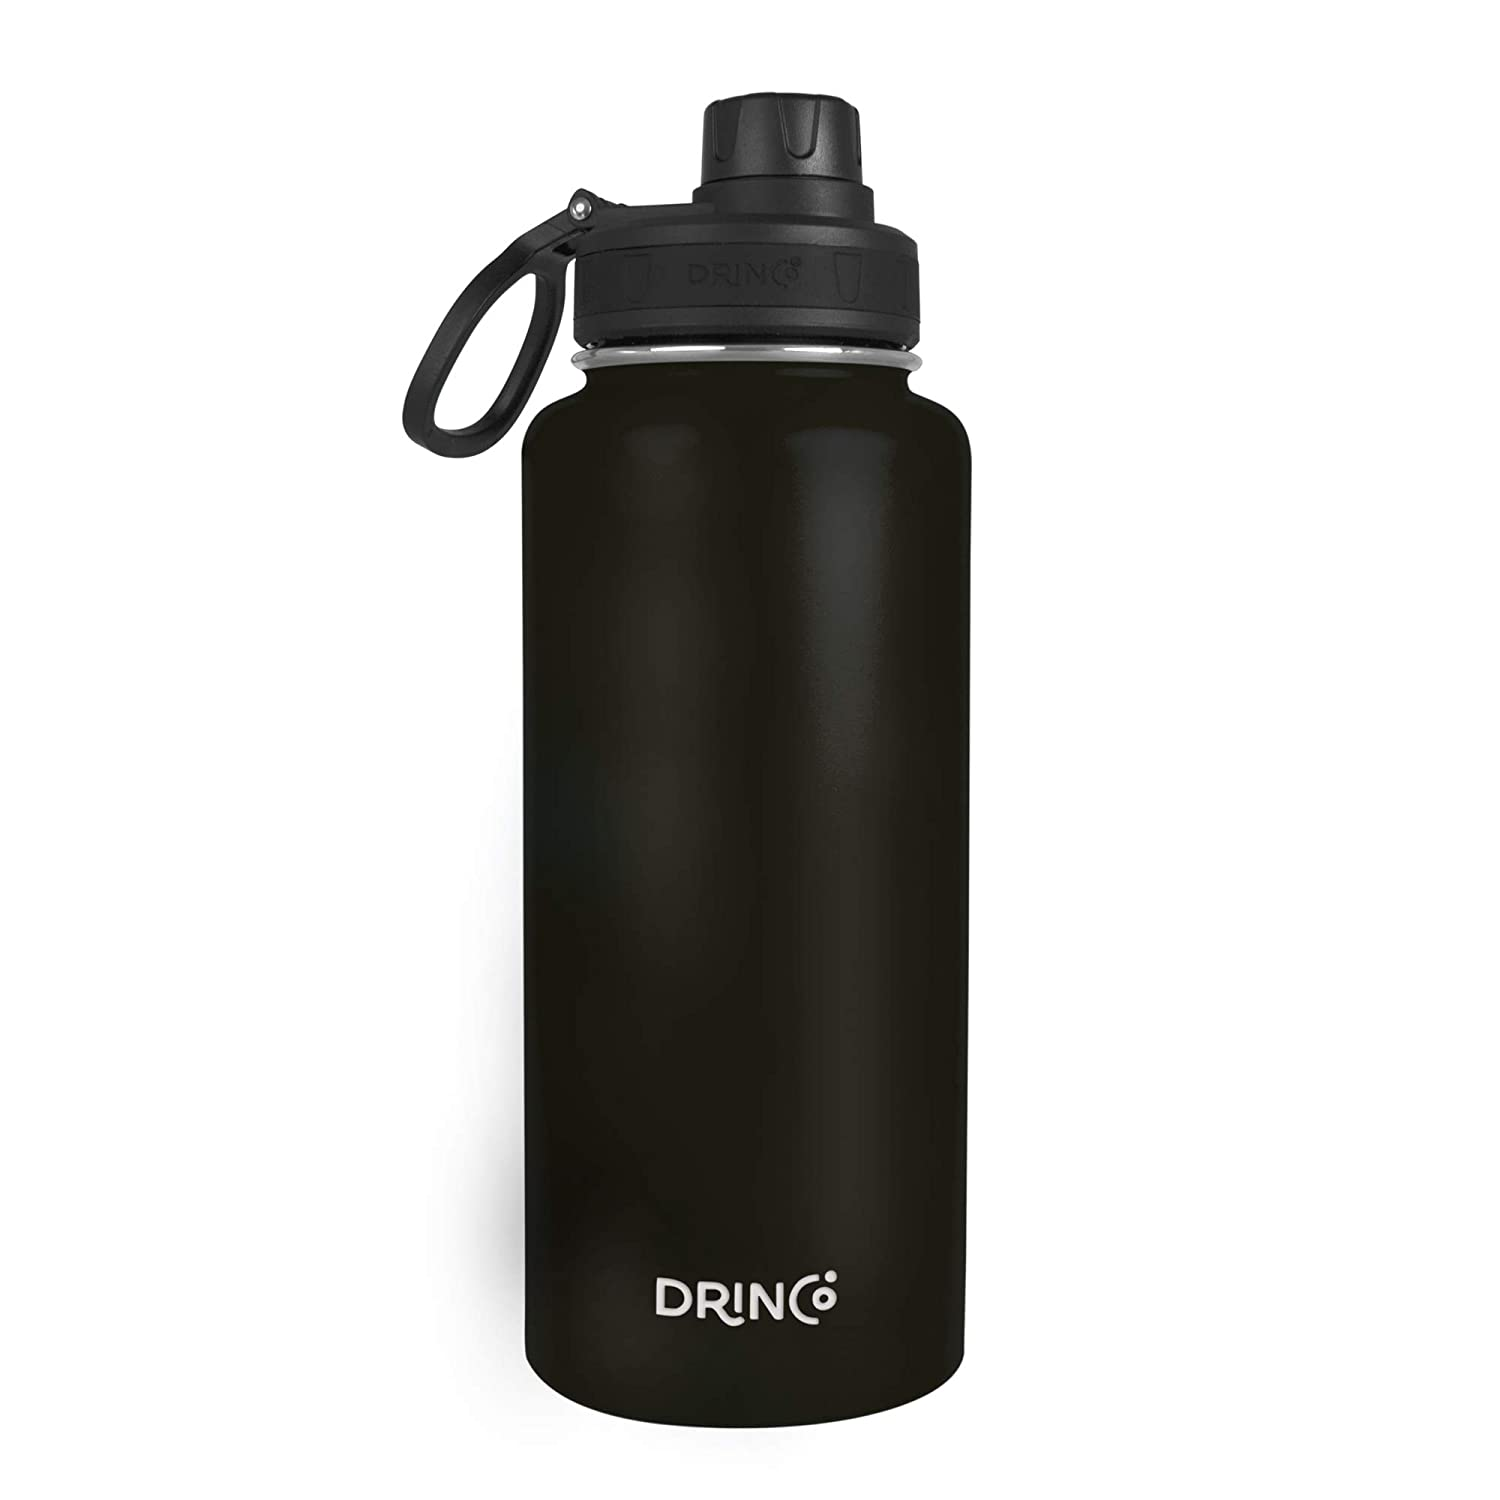 Drinco - Stainless Steel Water Bottle Double Wall Vacuum Insulated | Perfect for Traveling Camping Hiking | BPA Free (32oz-Black)